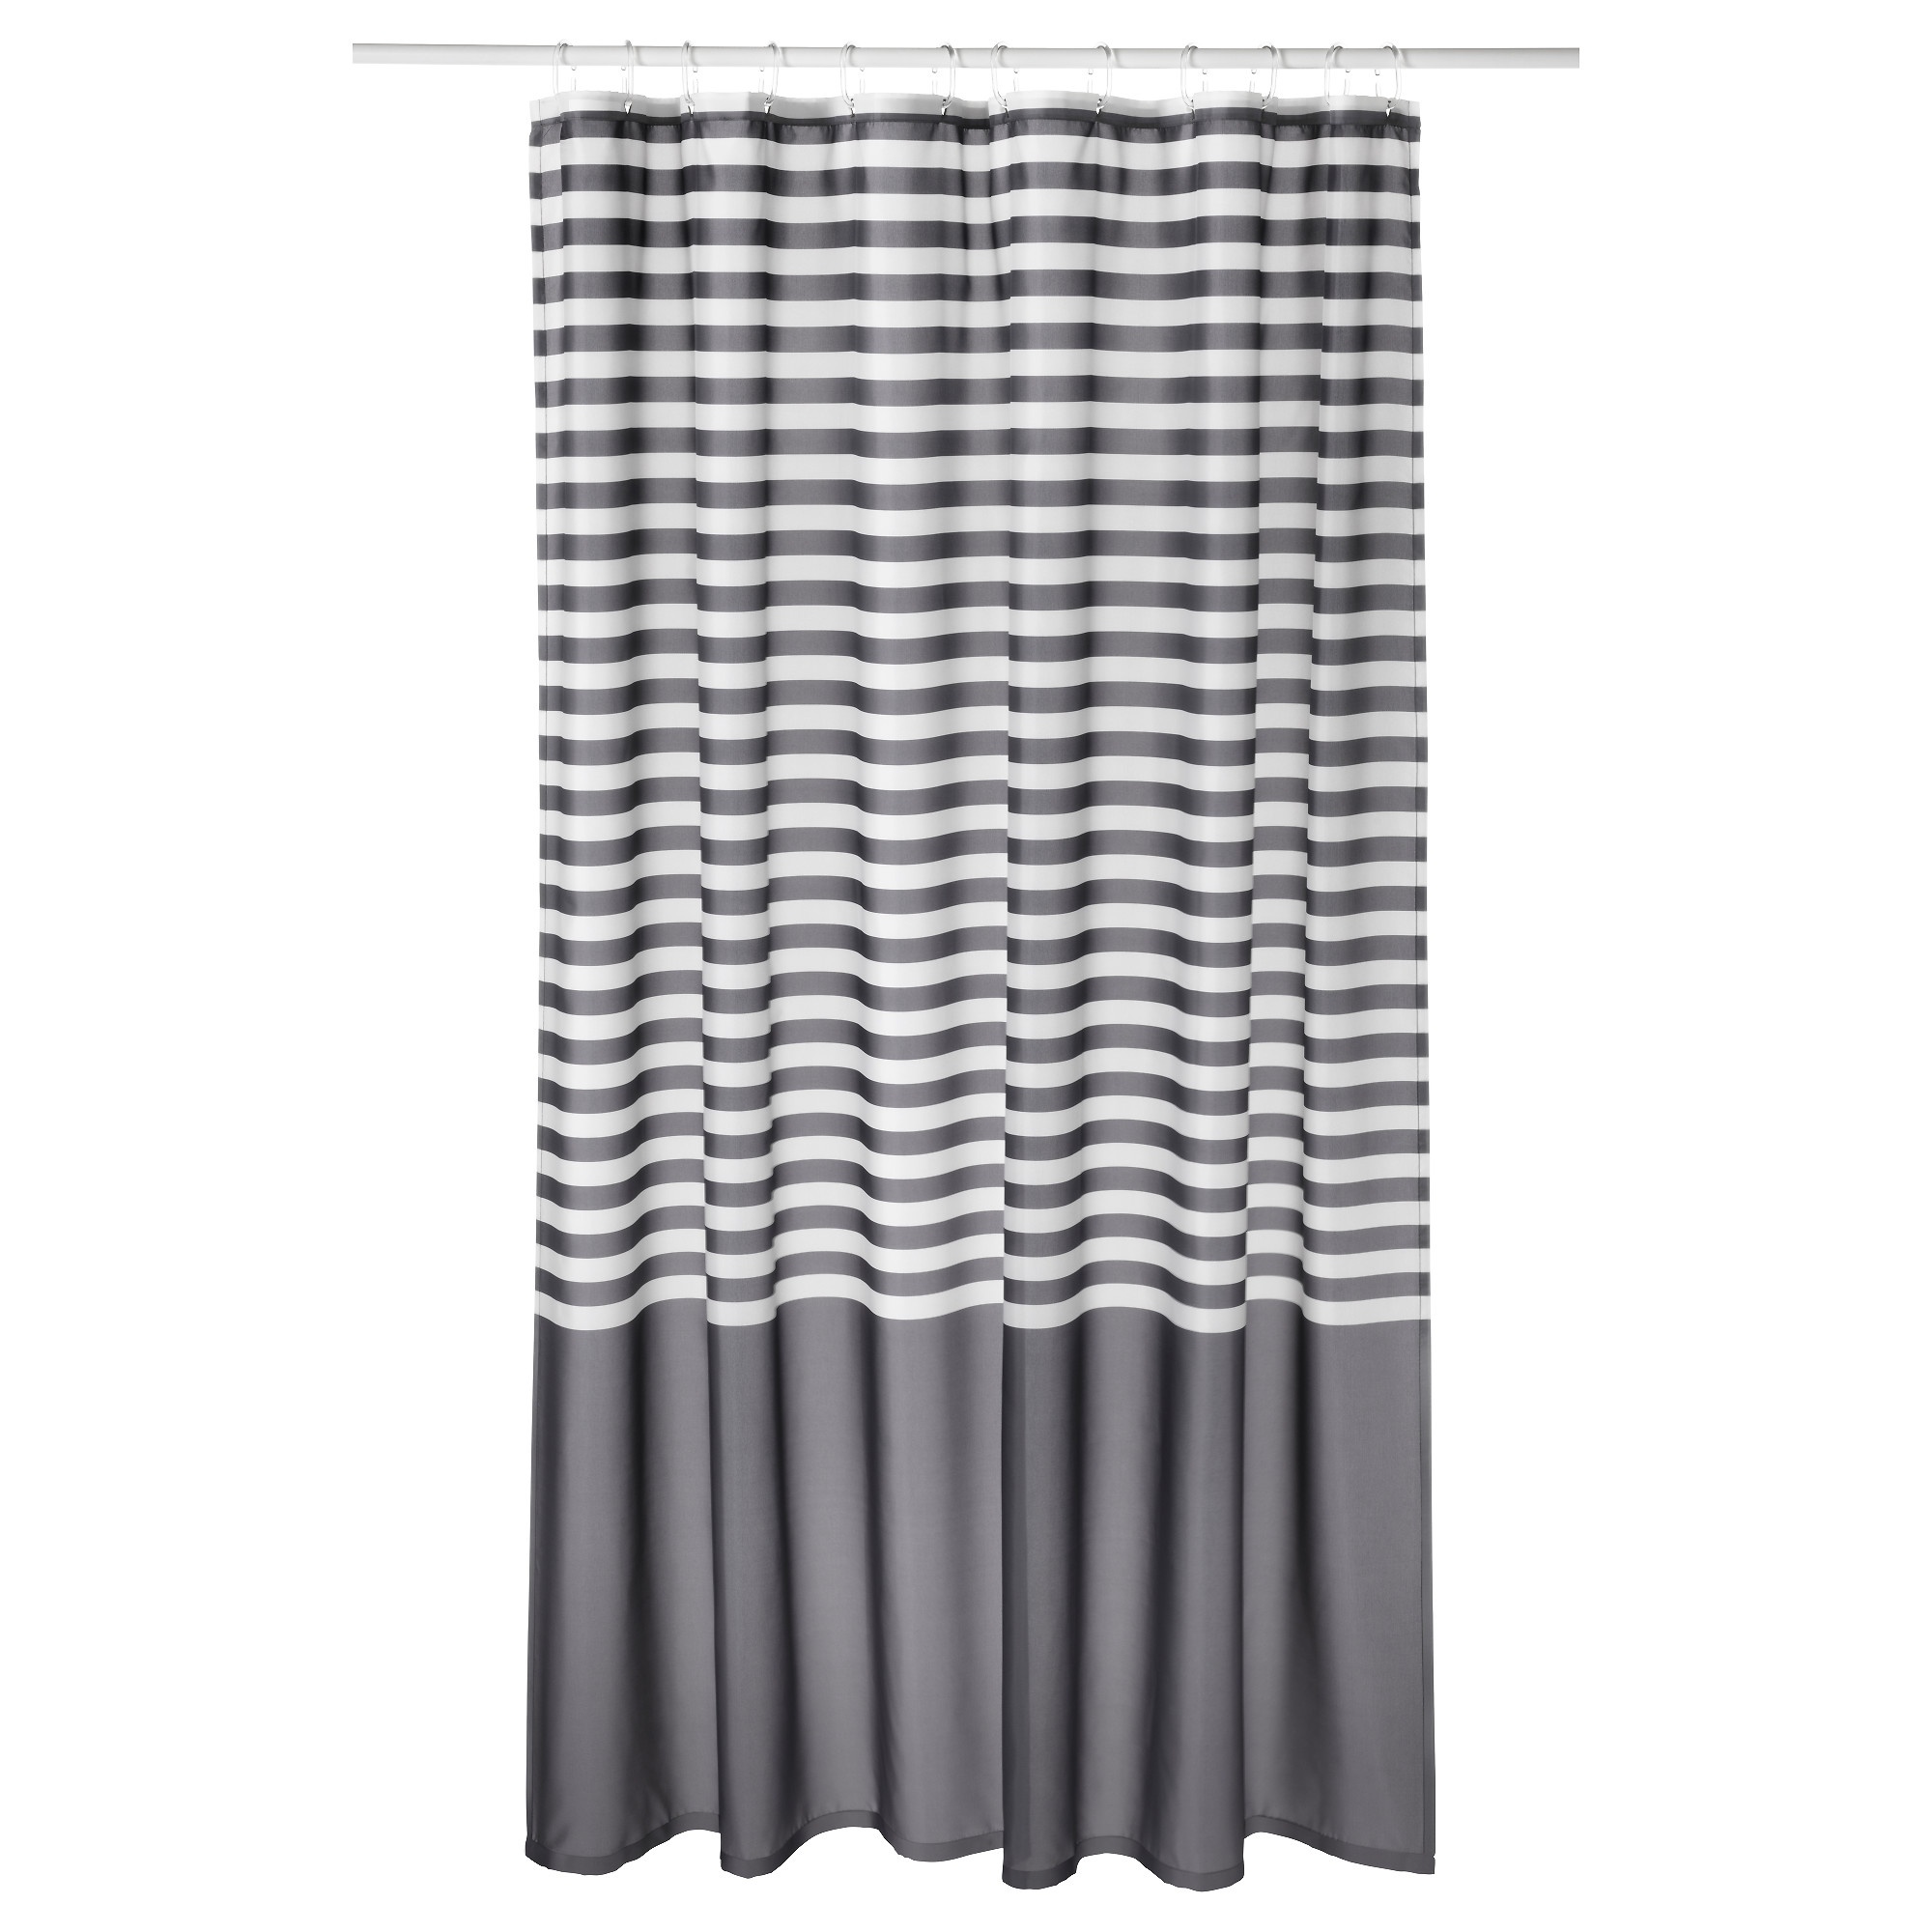 Ikea Shower Curtain for Best Your Bathroom Decoration: Ikea Shower Curtain | Oversized Shower Curtain | Ikea Curtain Rod